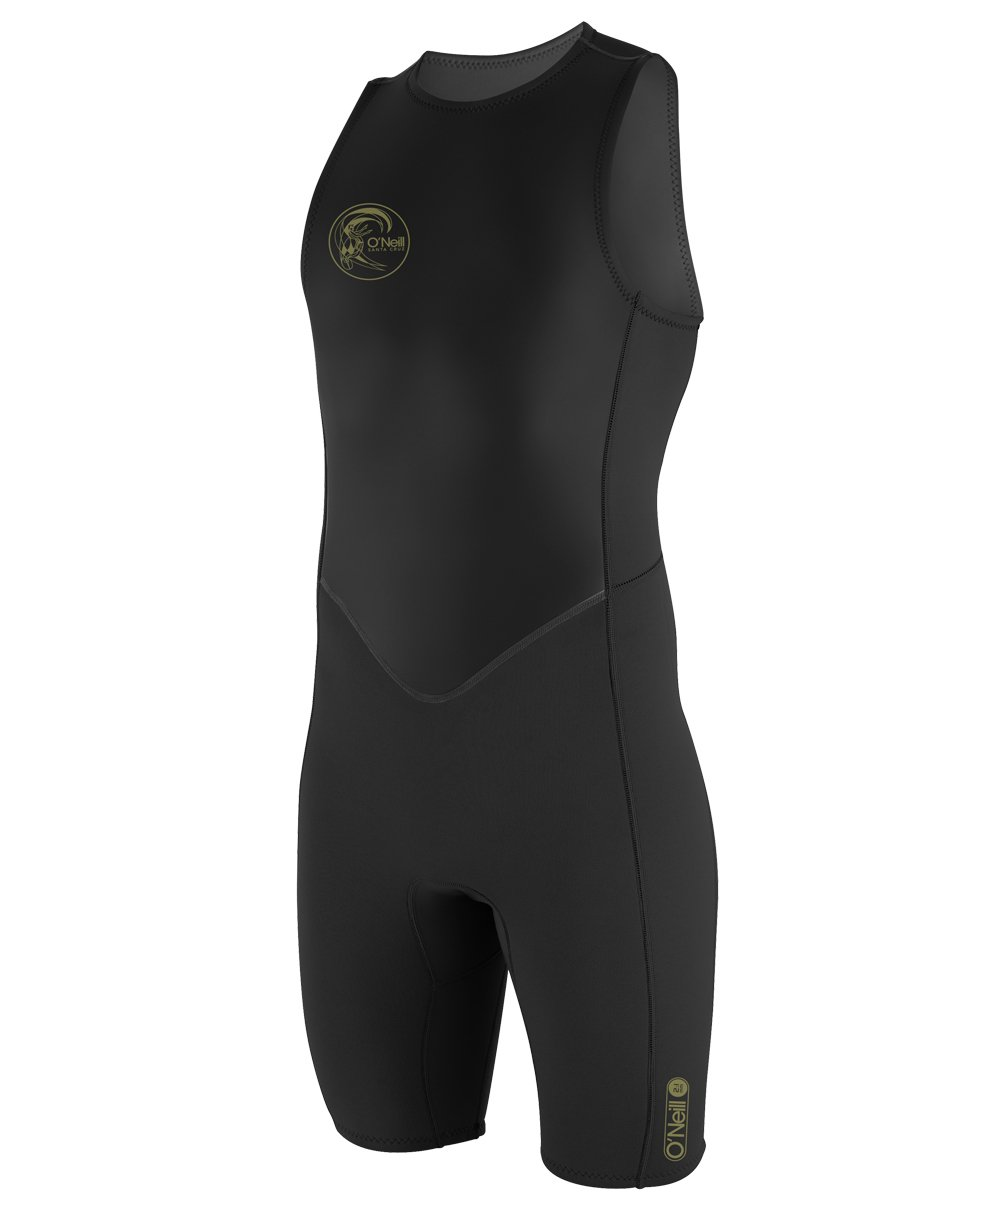 O'Neill Men's O'Riginal 2mm Back Zip Sleeveless Spring Wetsuit, Black, Large